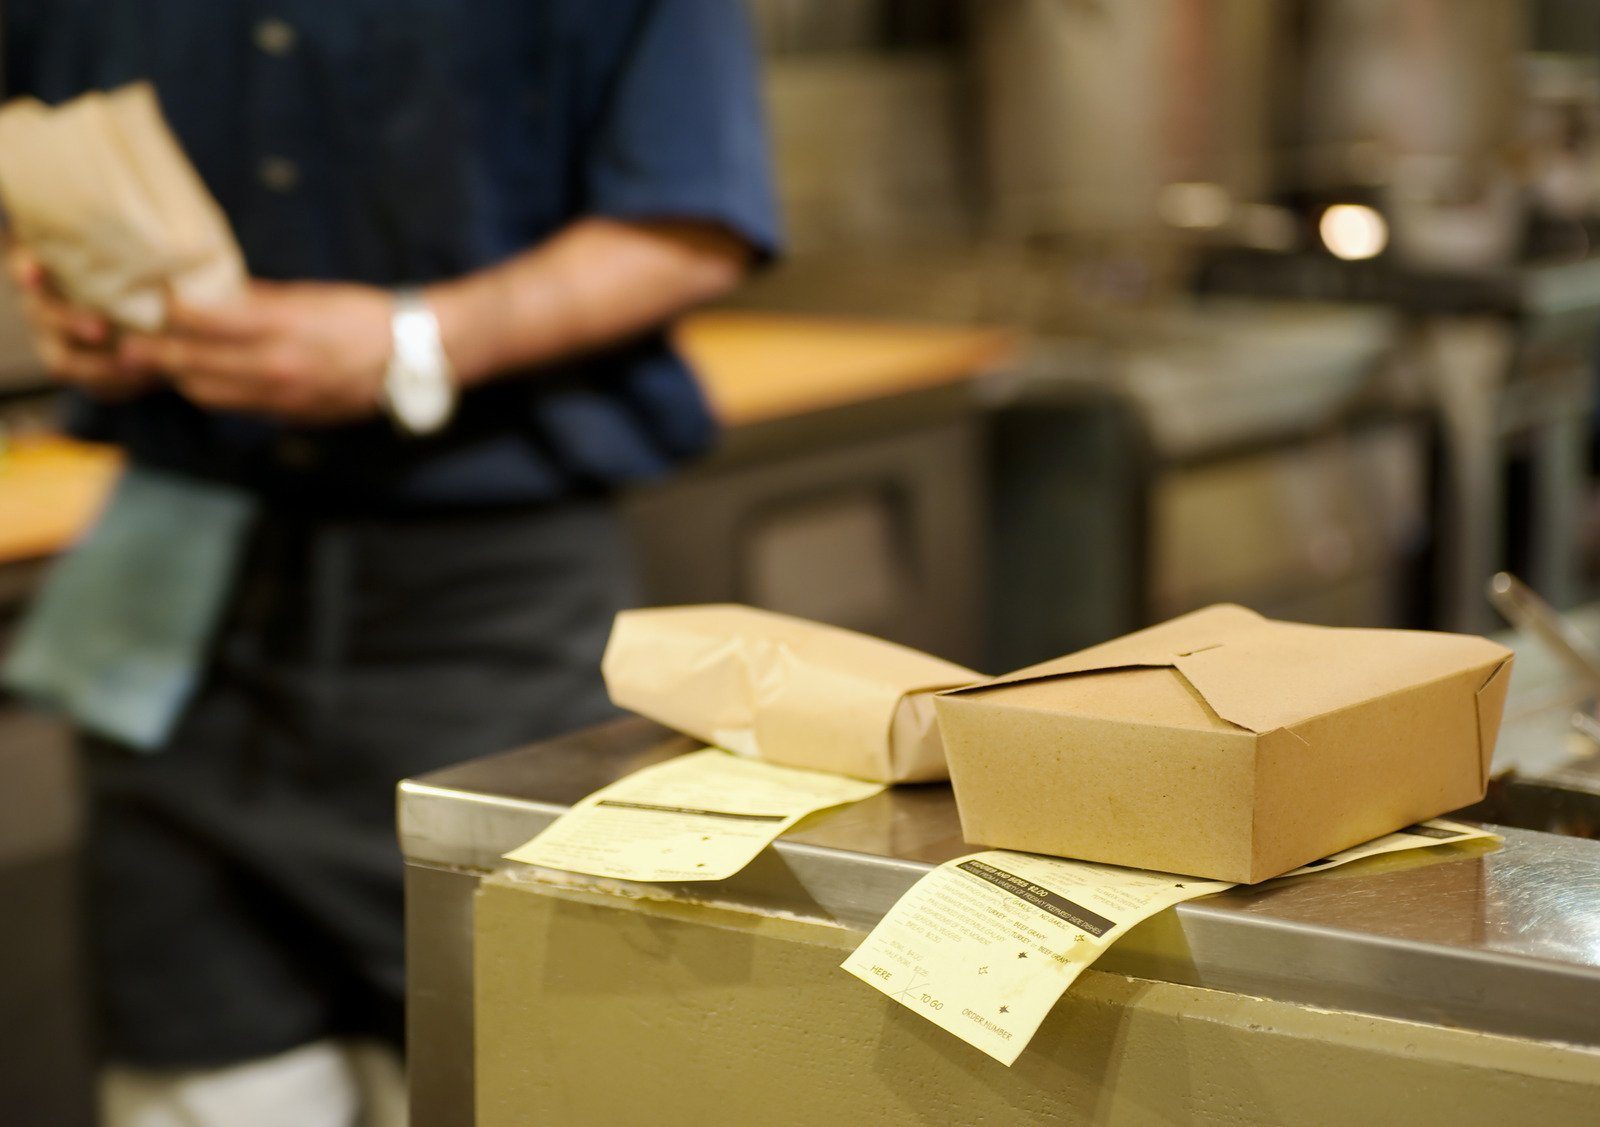 Takeout boxes and receipts in the kitchen